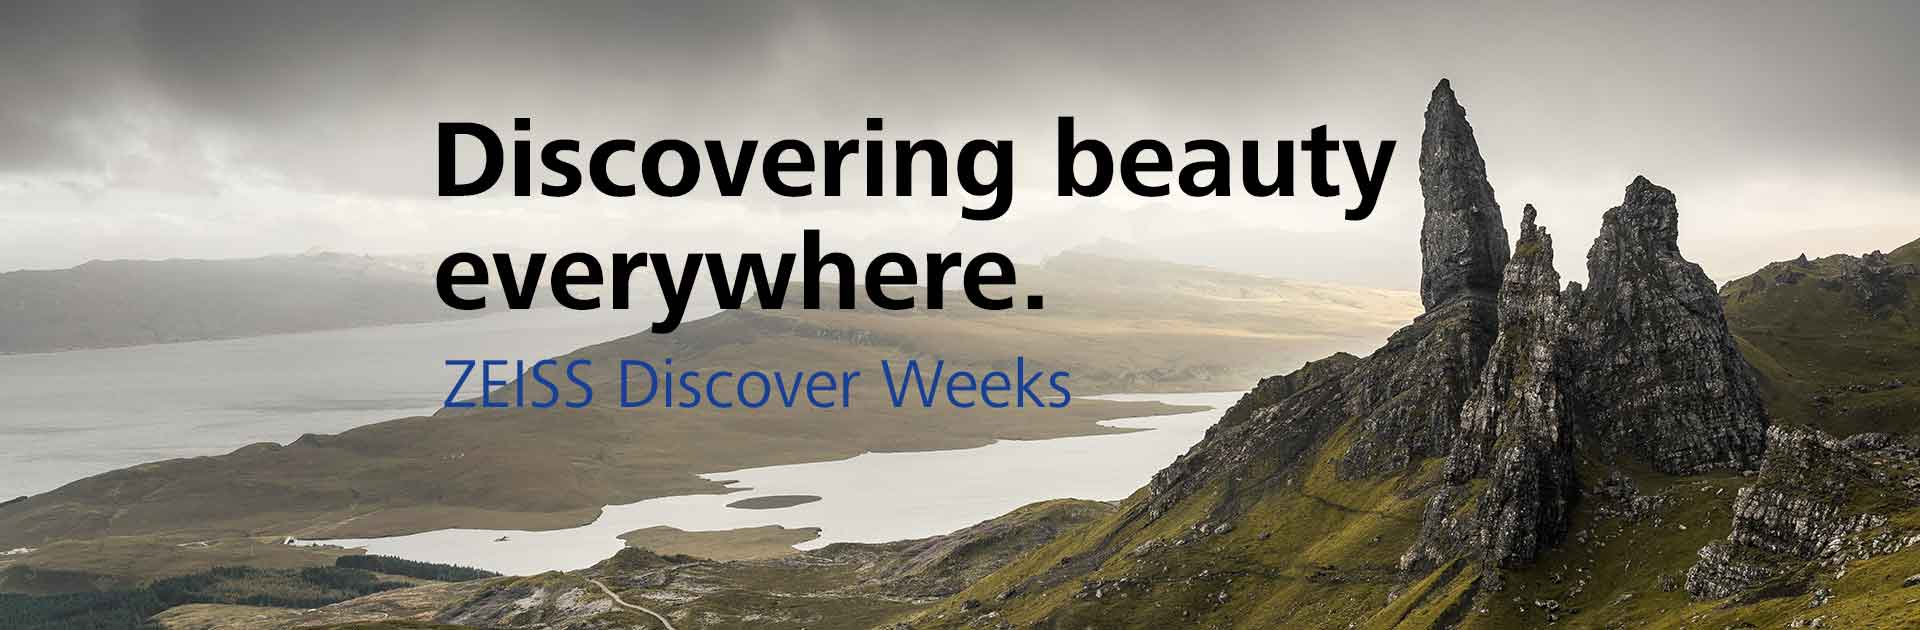 ZEISS Discover Weeks 15.6.-31.7.2018